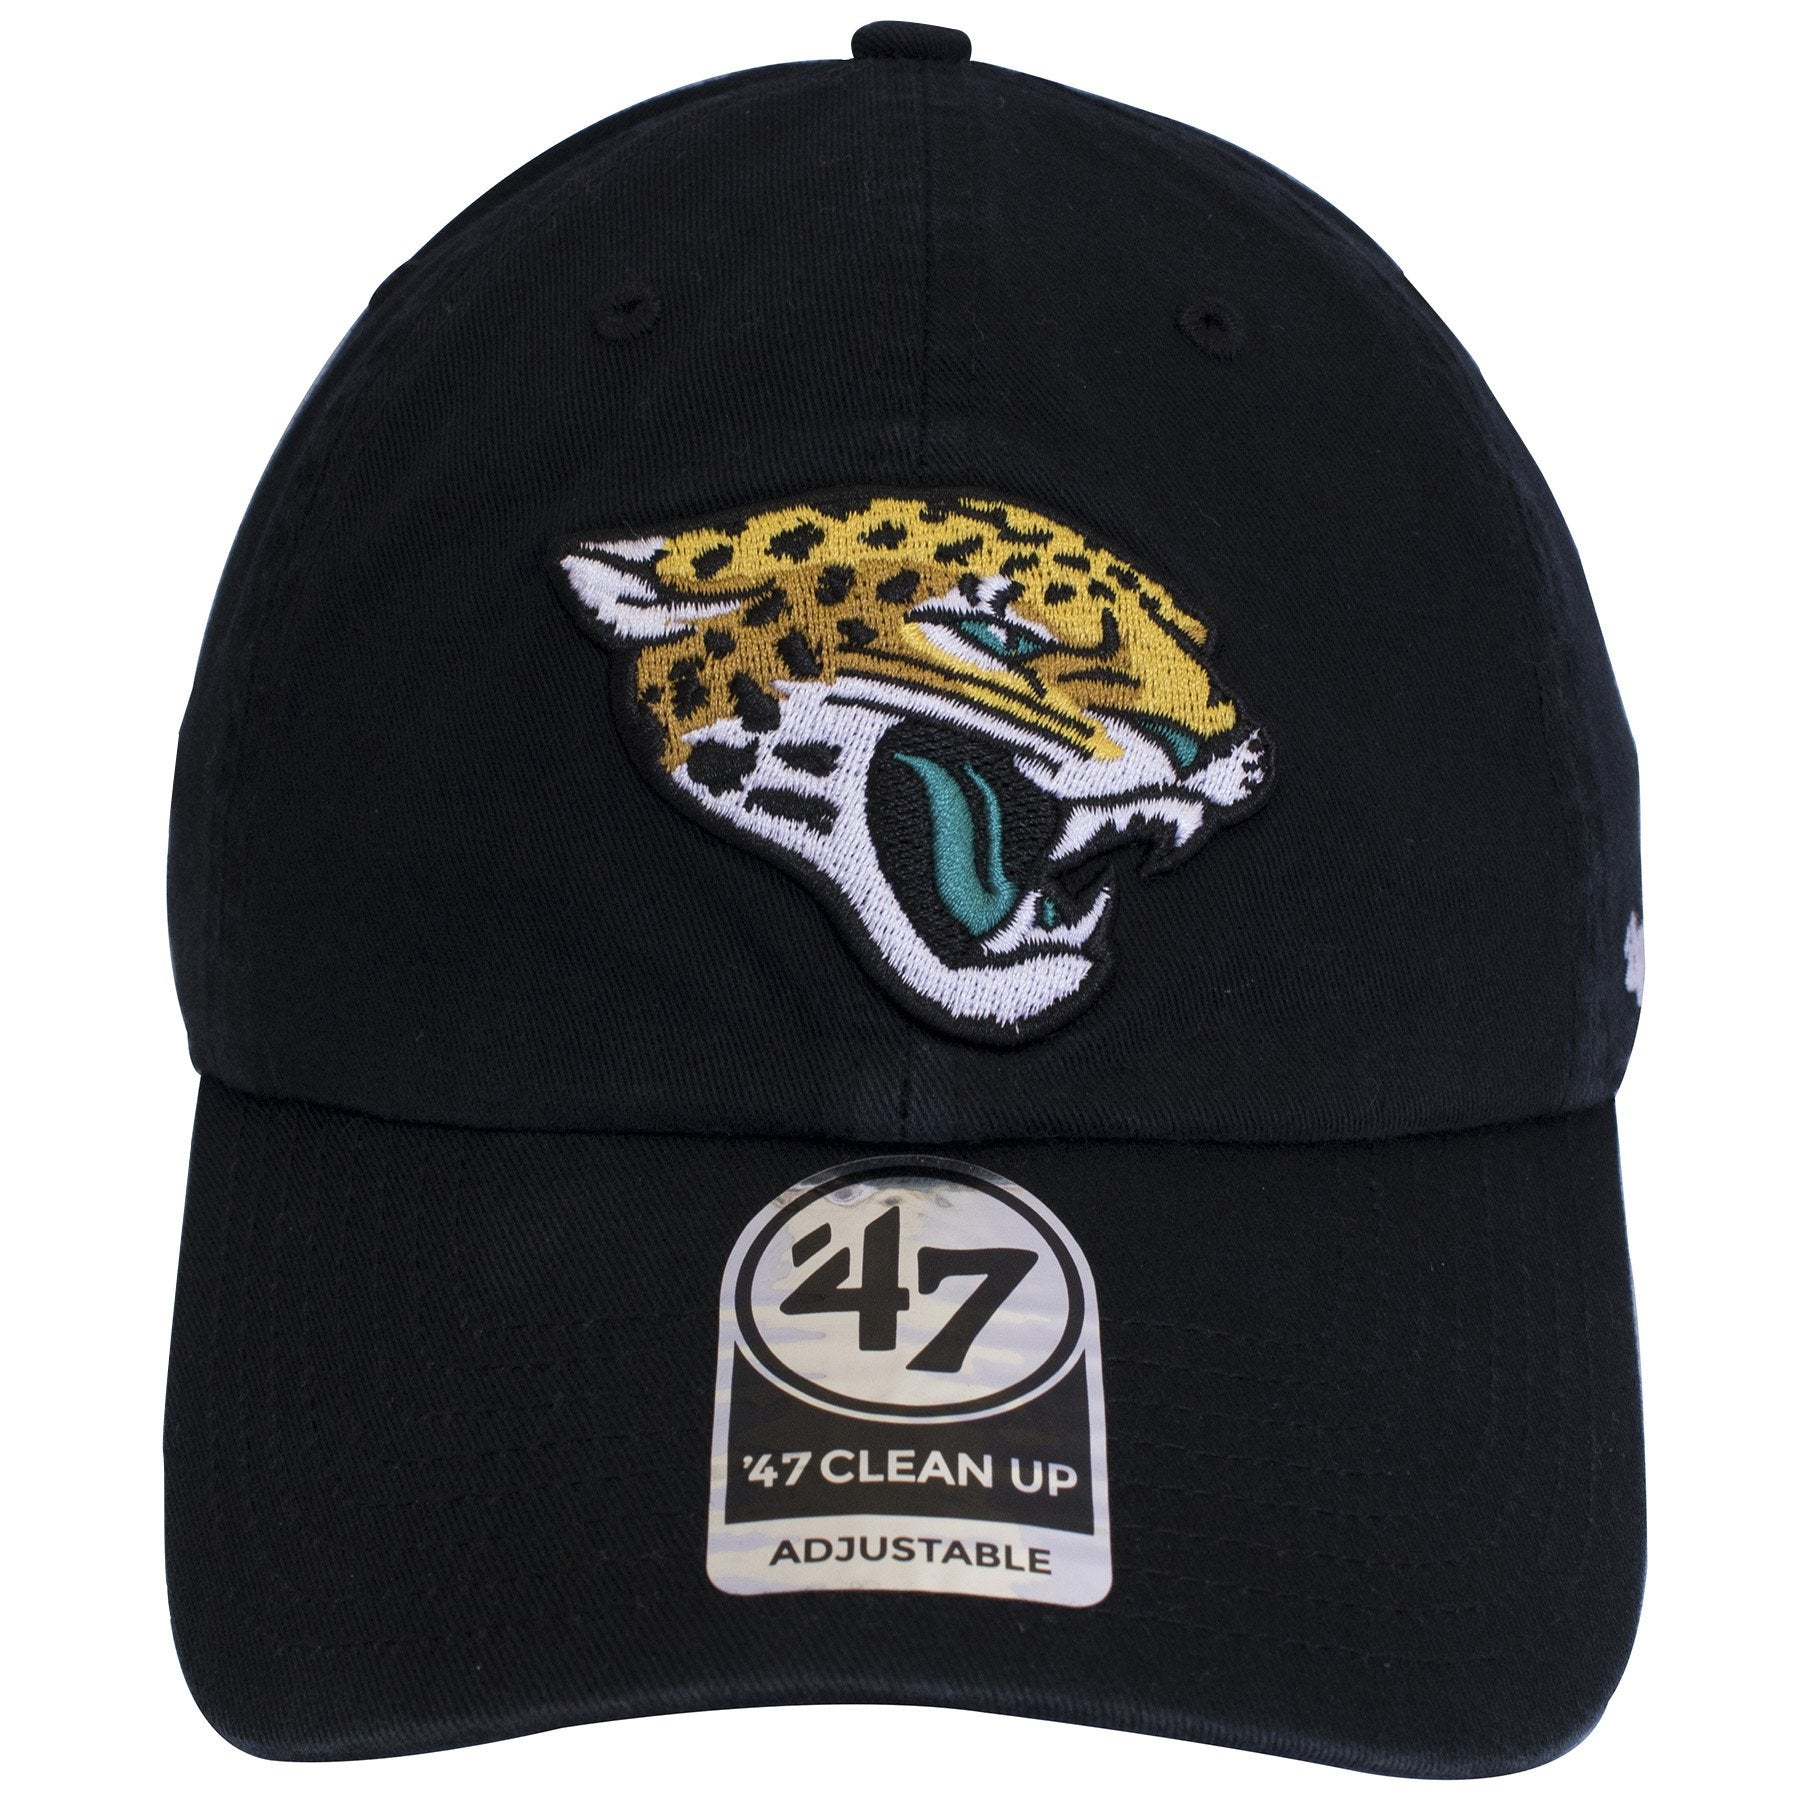 new product 0e3e6 14e9e The Jacksonville Jaguars logo is embroidered on top of a basic black  unstructured dad hat.